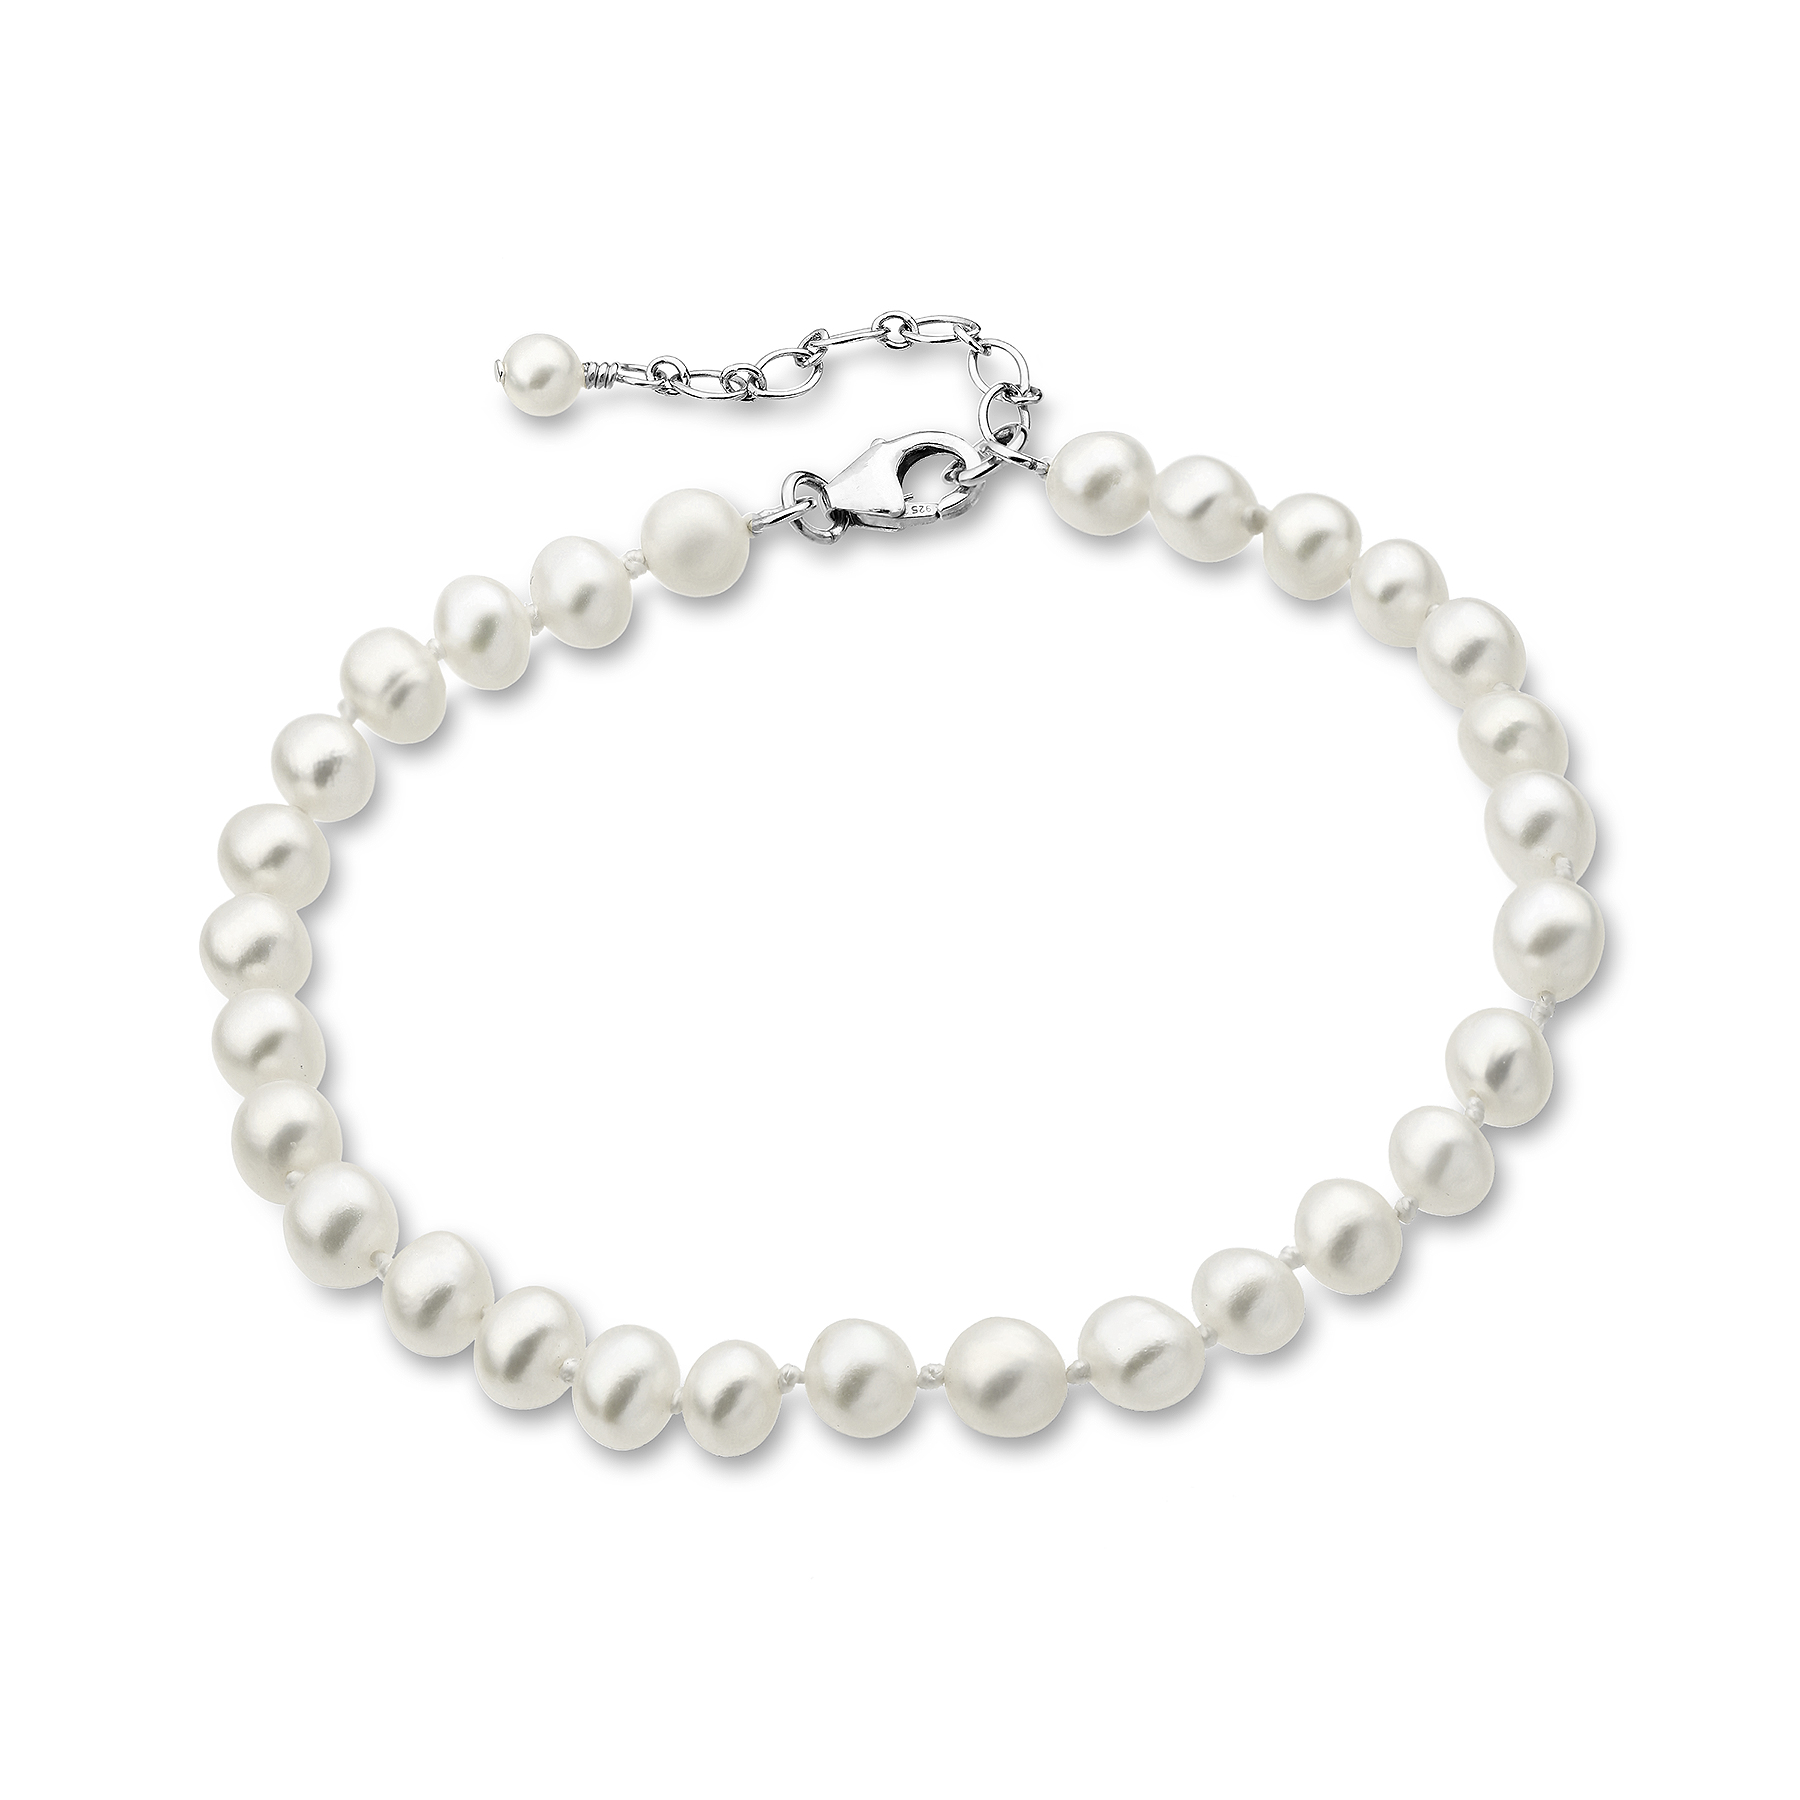 382-2773AAA - 925 Sterling Silver Bracelet Beaded With AAA Quality Fresh Water Pearls